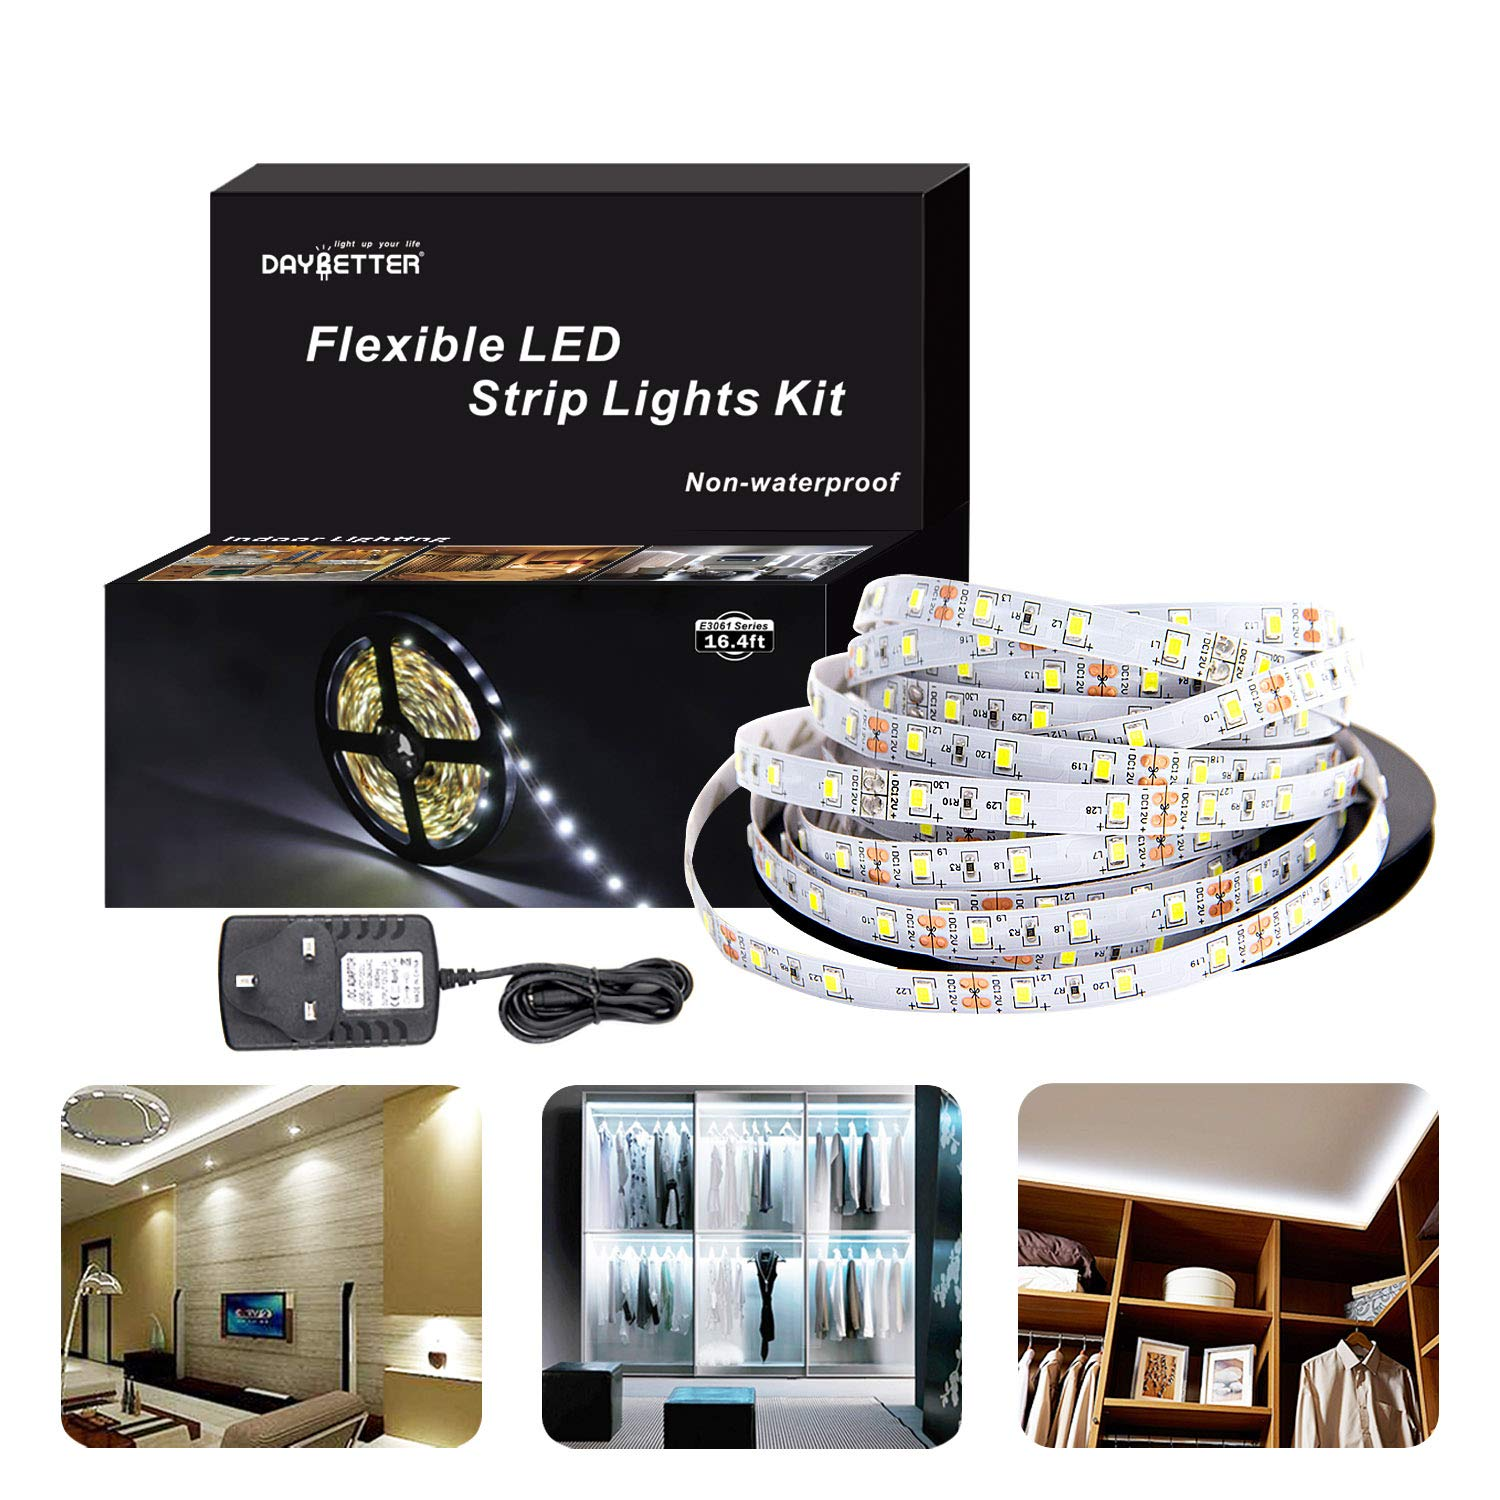 3528 LED Strip Lights, 300 Leds 12v Flexible 5M Powered Adapter kit, non-waterproof Bright Daylight cool white lighting For Bedroom TV Kitchen Ceiling DAYBETTER